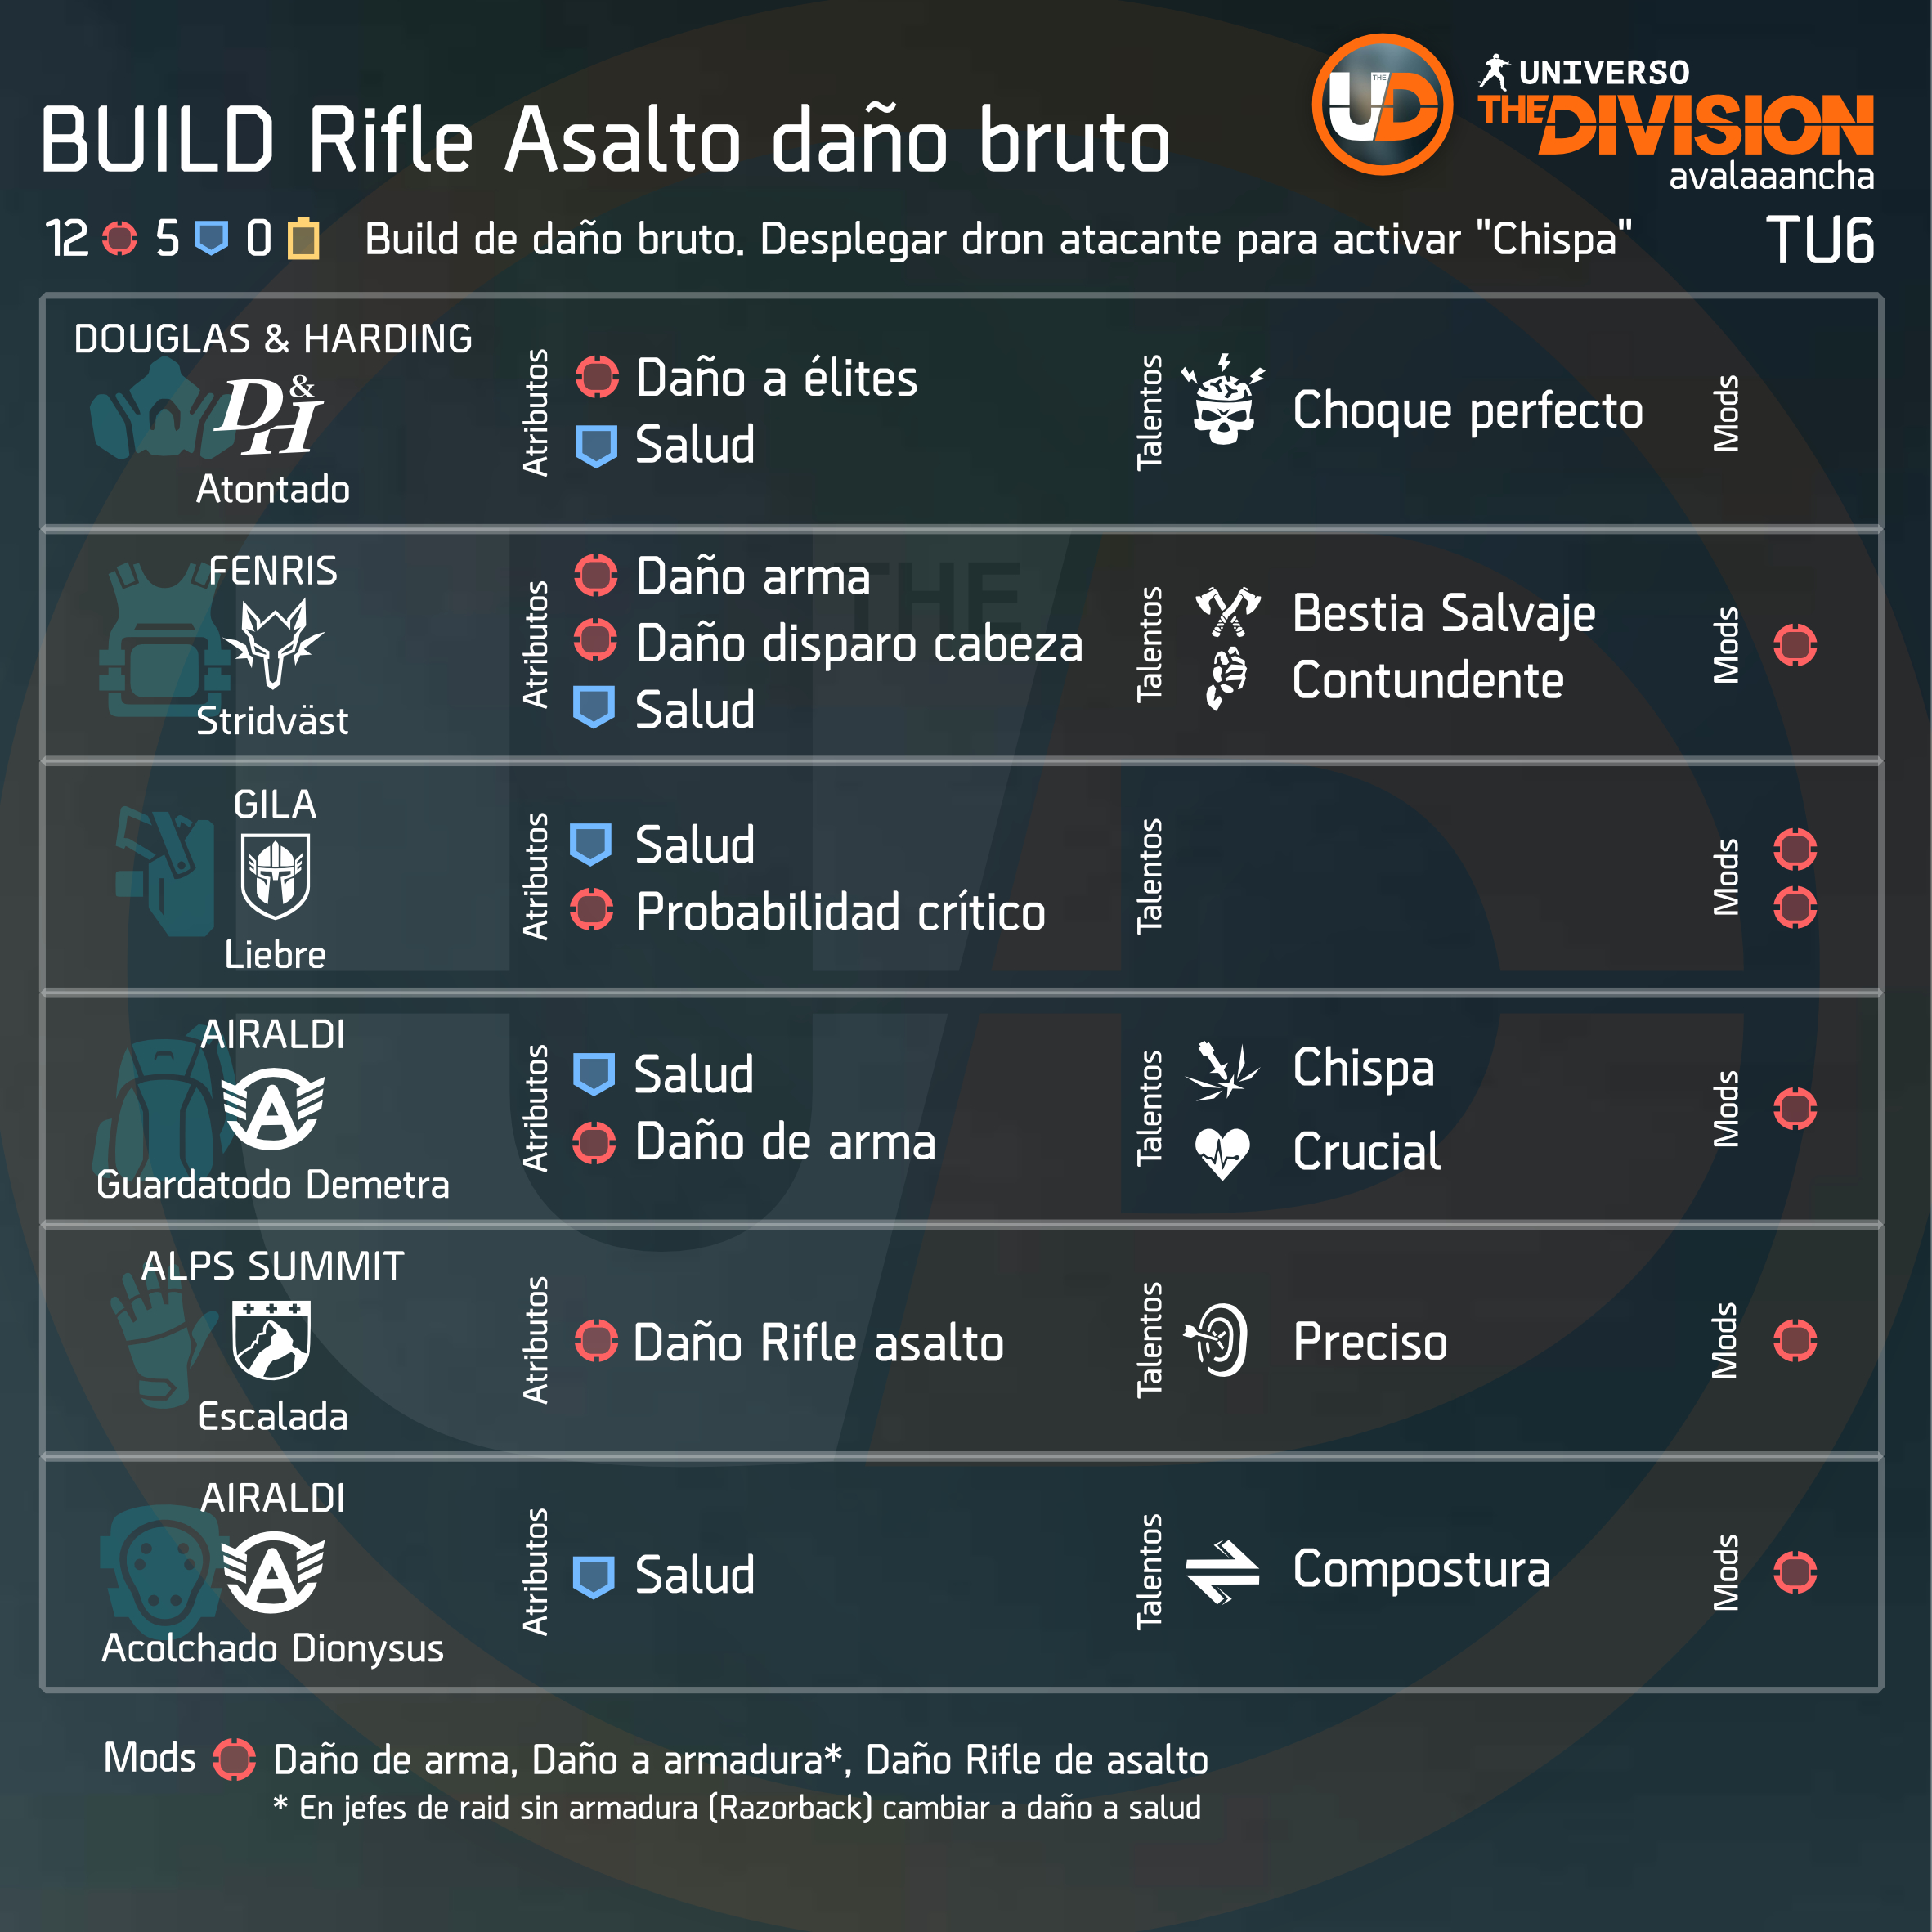 Build rifle de asalto